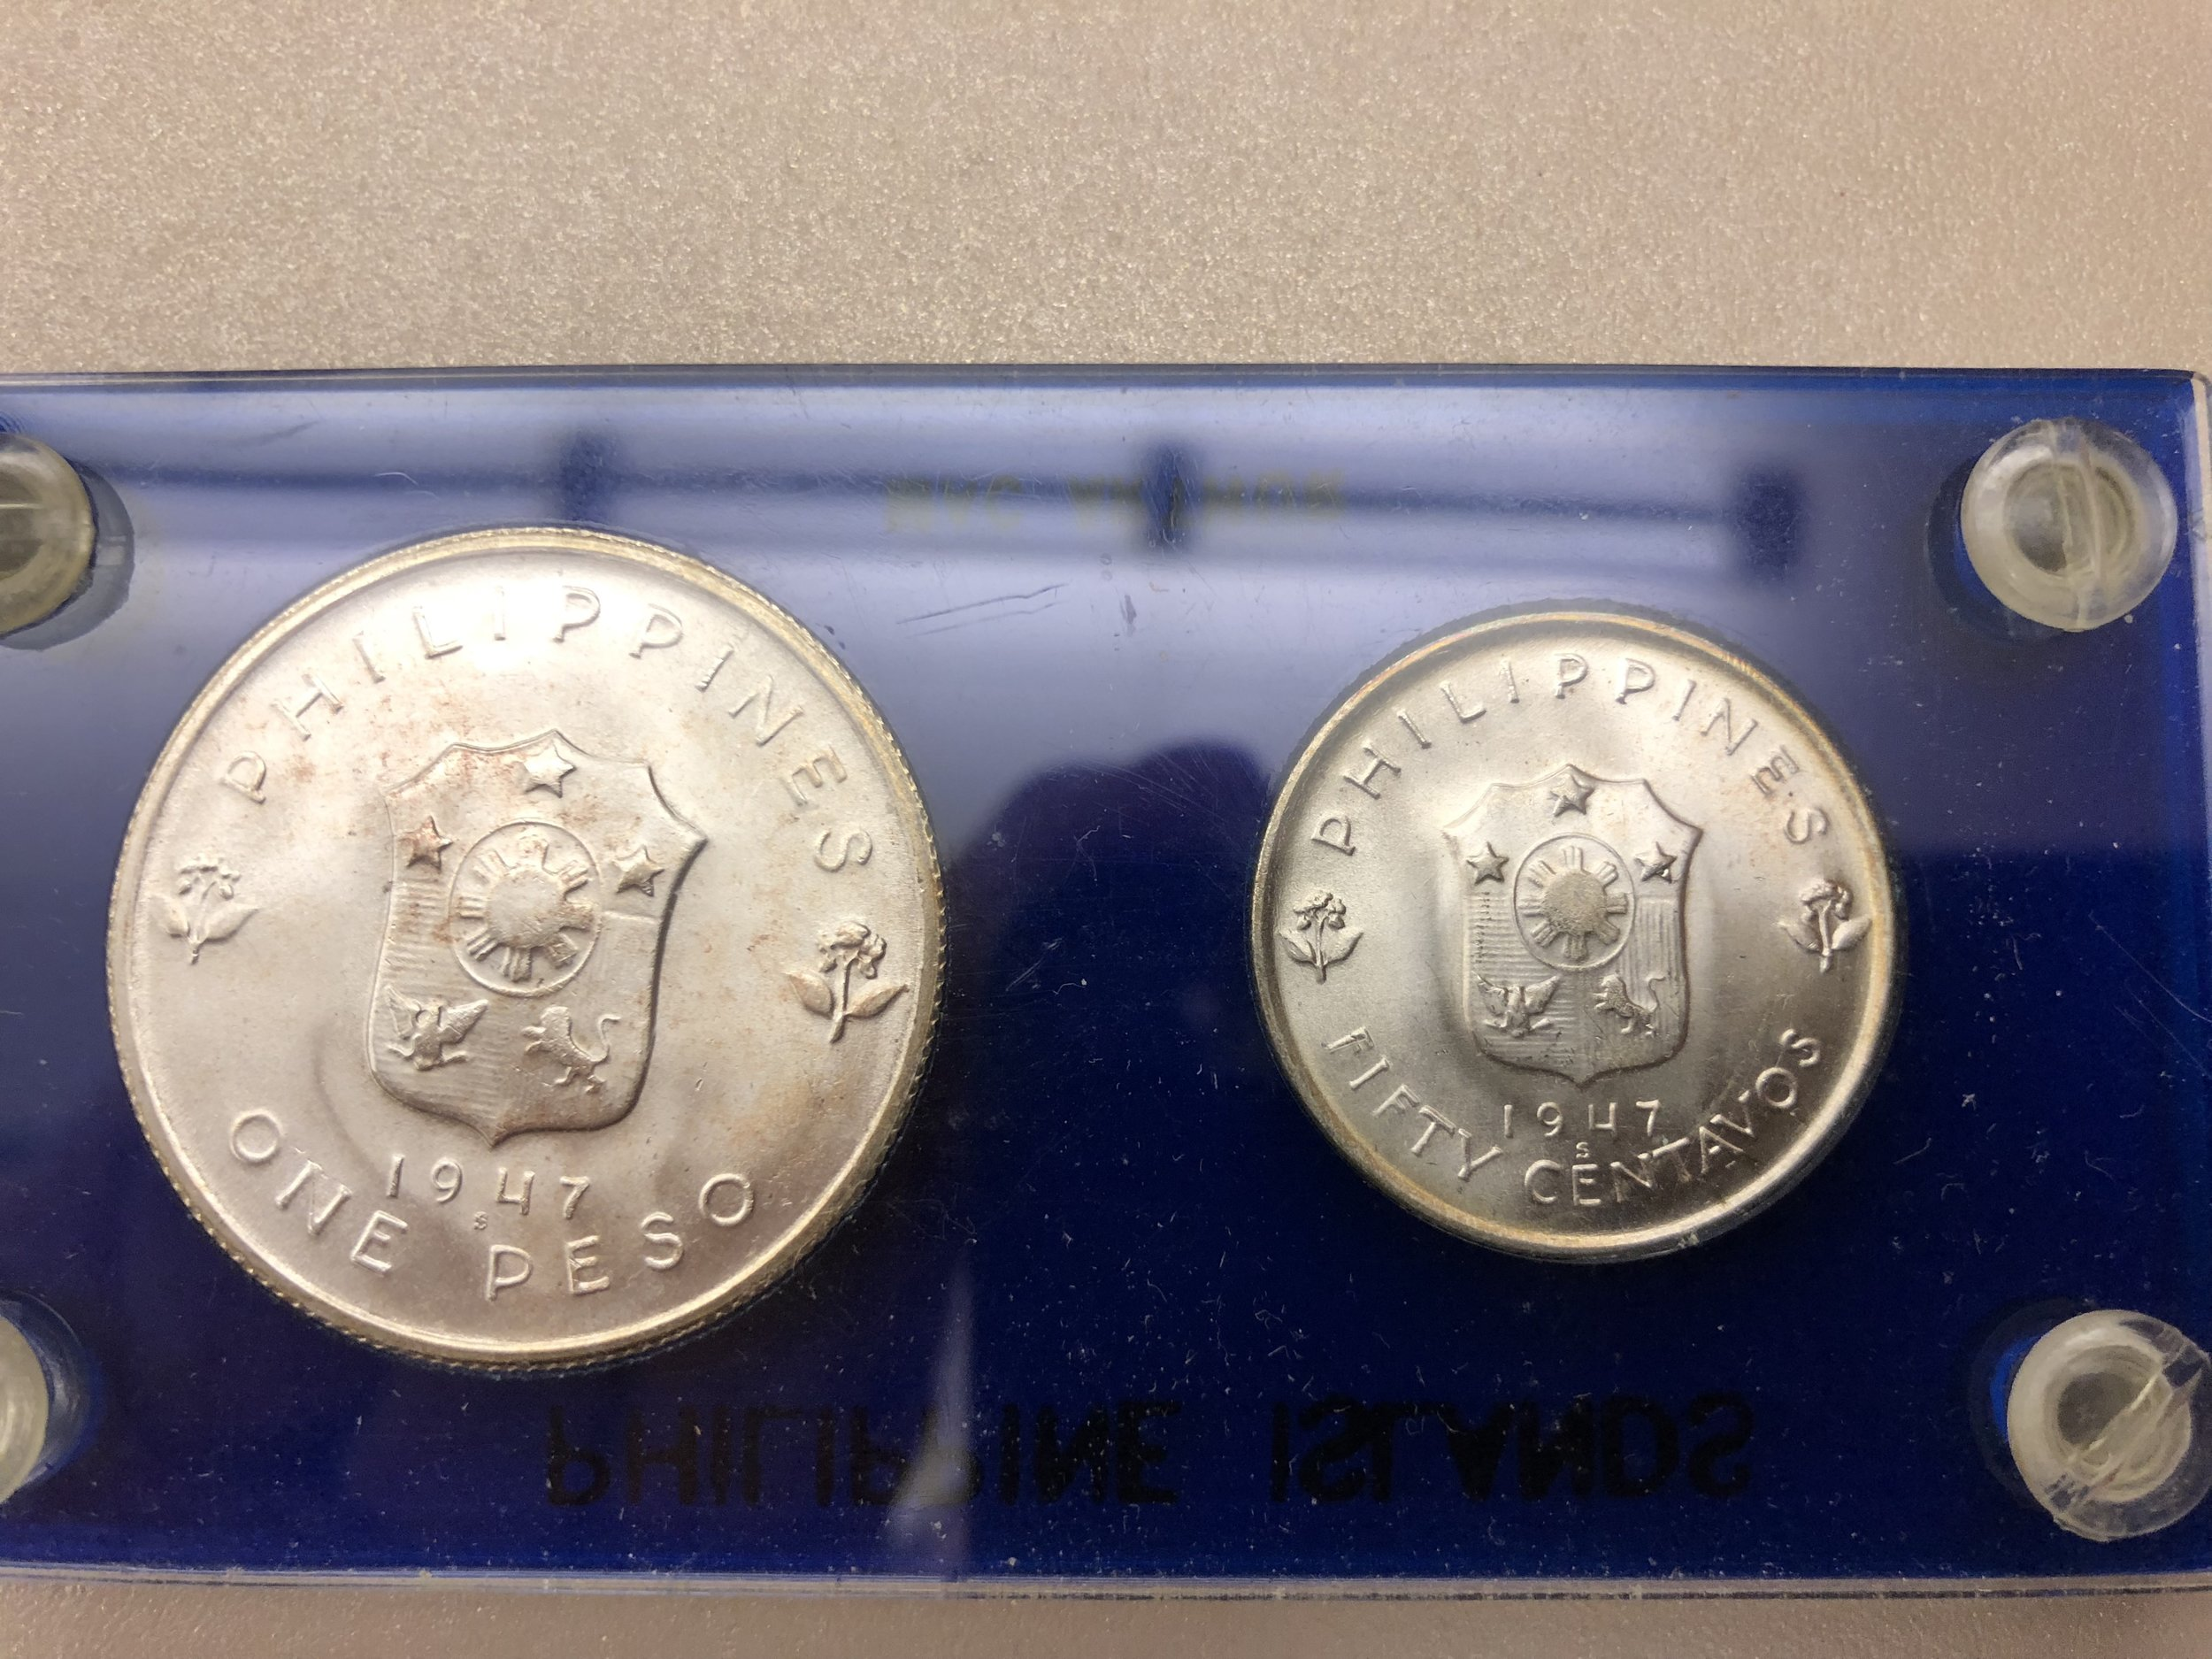 Obverse has the Coat of Arms of the Philippines.  The date and mint mark is also displayed.